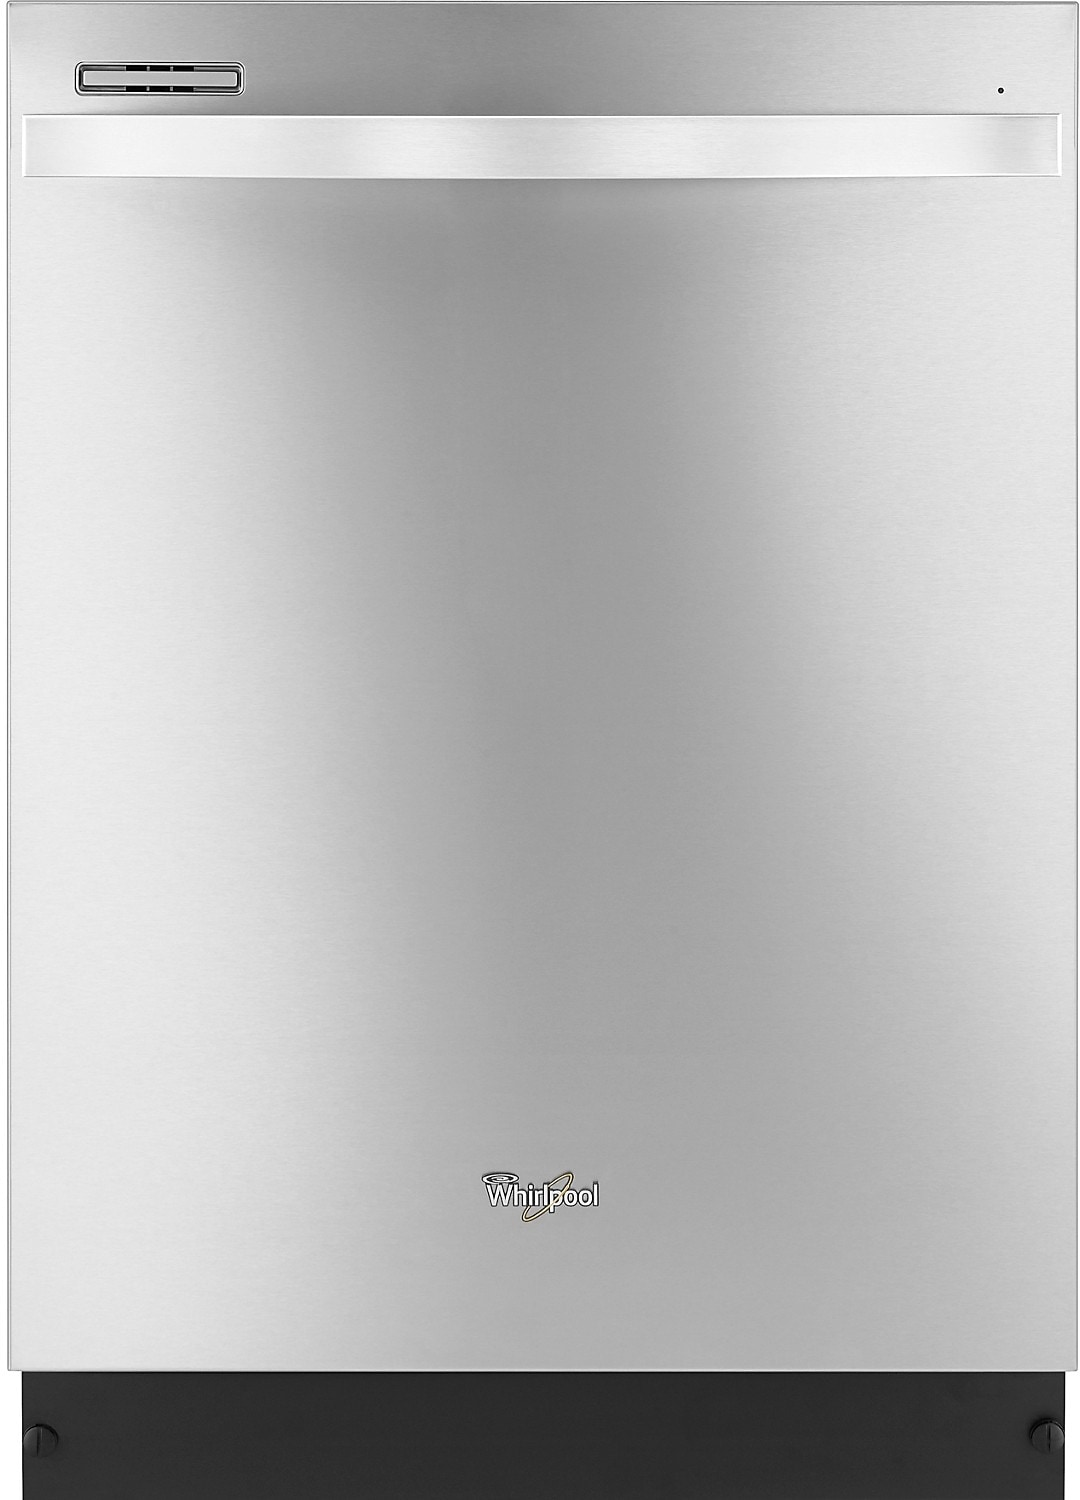 Clean-Up - Whirlpool Gold® Built-In Dishwasher with Silverware Spray – Stainless Steel